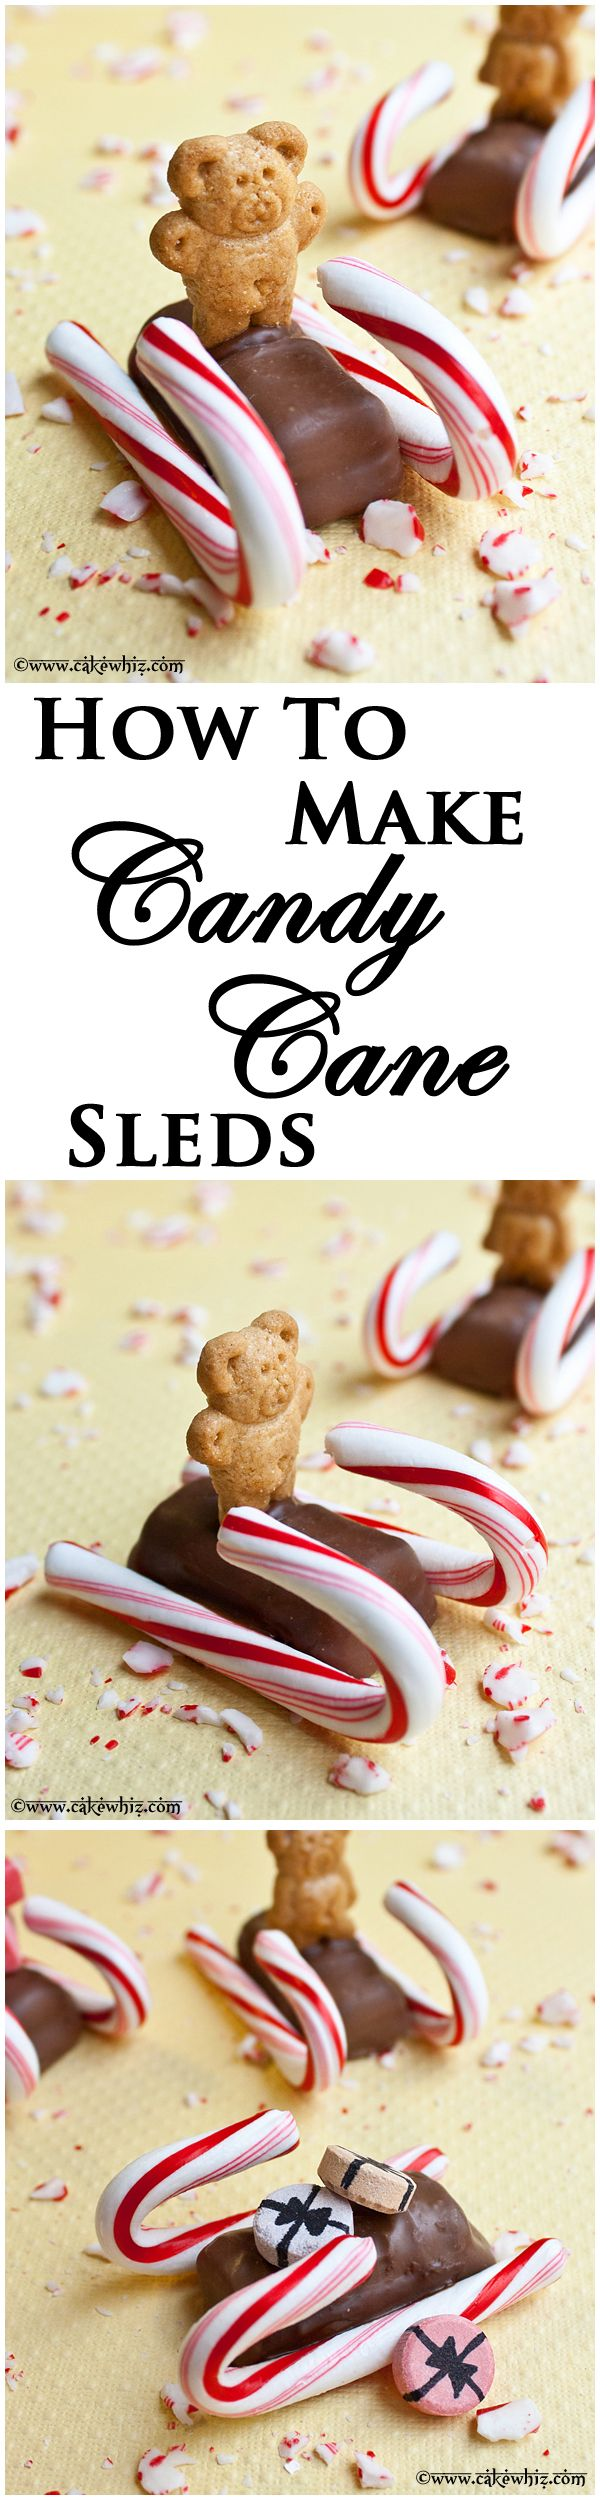 Learn to make these cute and easy CANDY CANE SLEDS carrying little teddy graham biscuits or candy gift packages! From cakewhiz.com